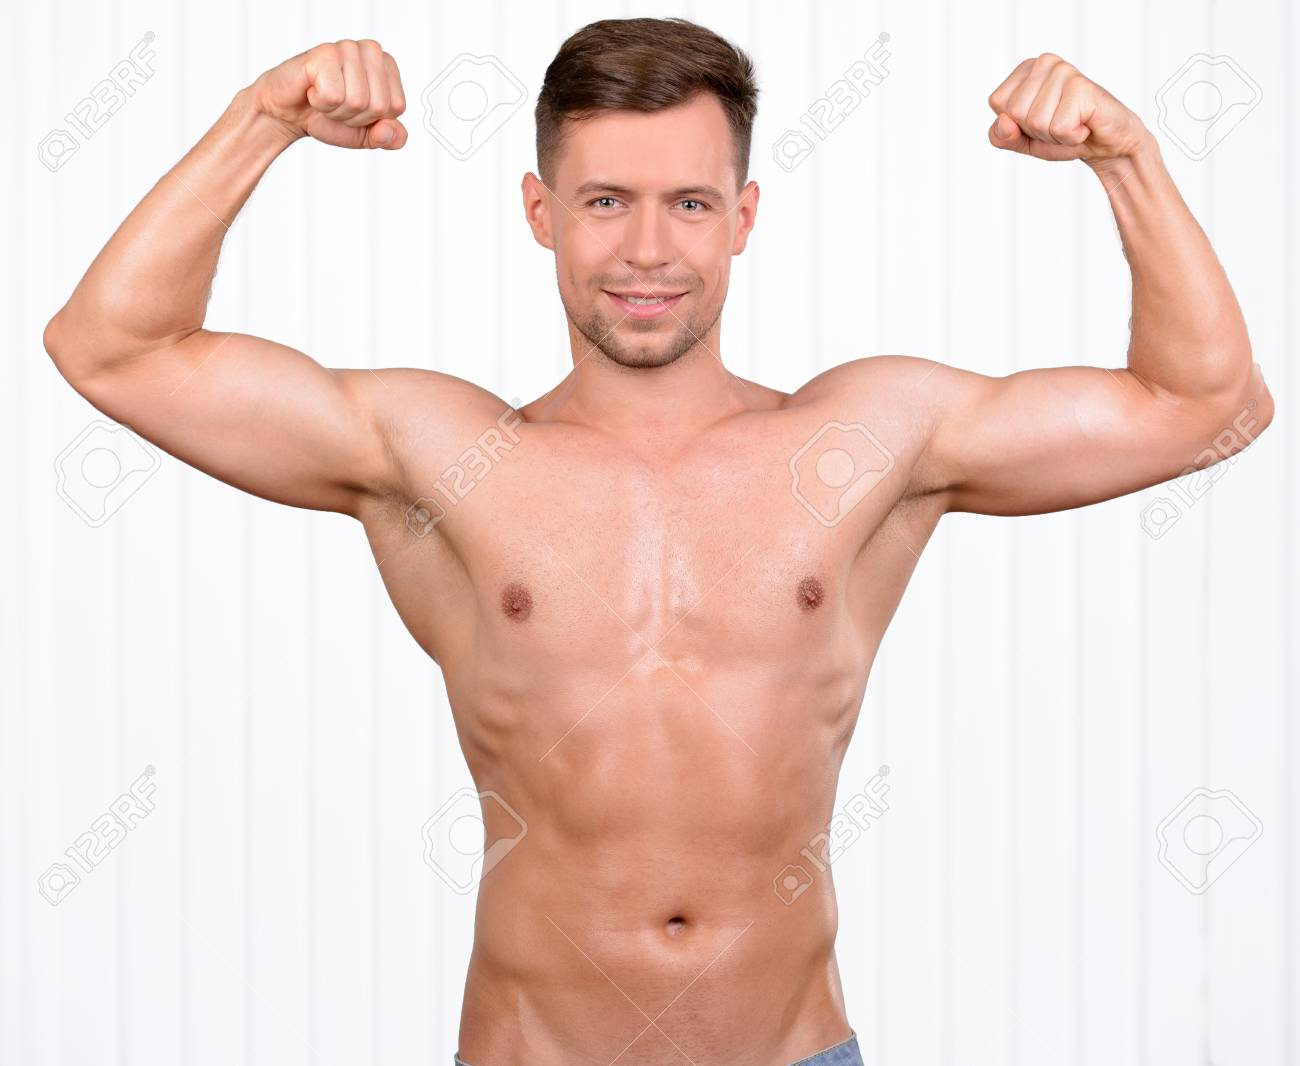 56371688c Keeping his body in good shape. Cheerful young muscular man demonstration  of his body Stock